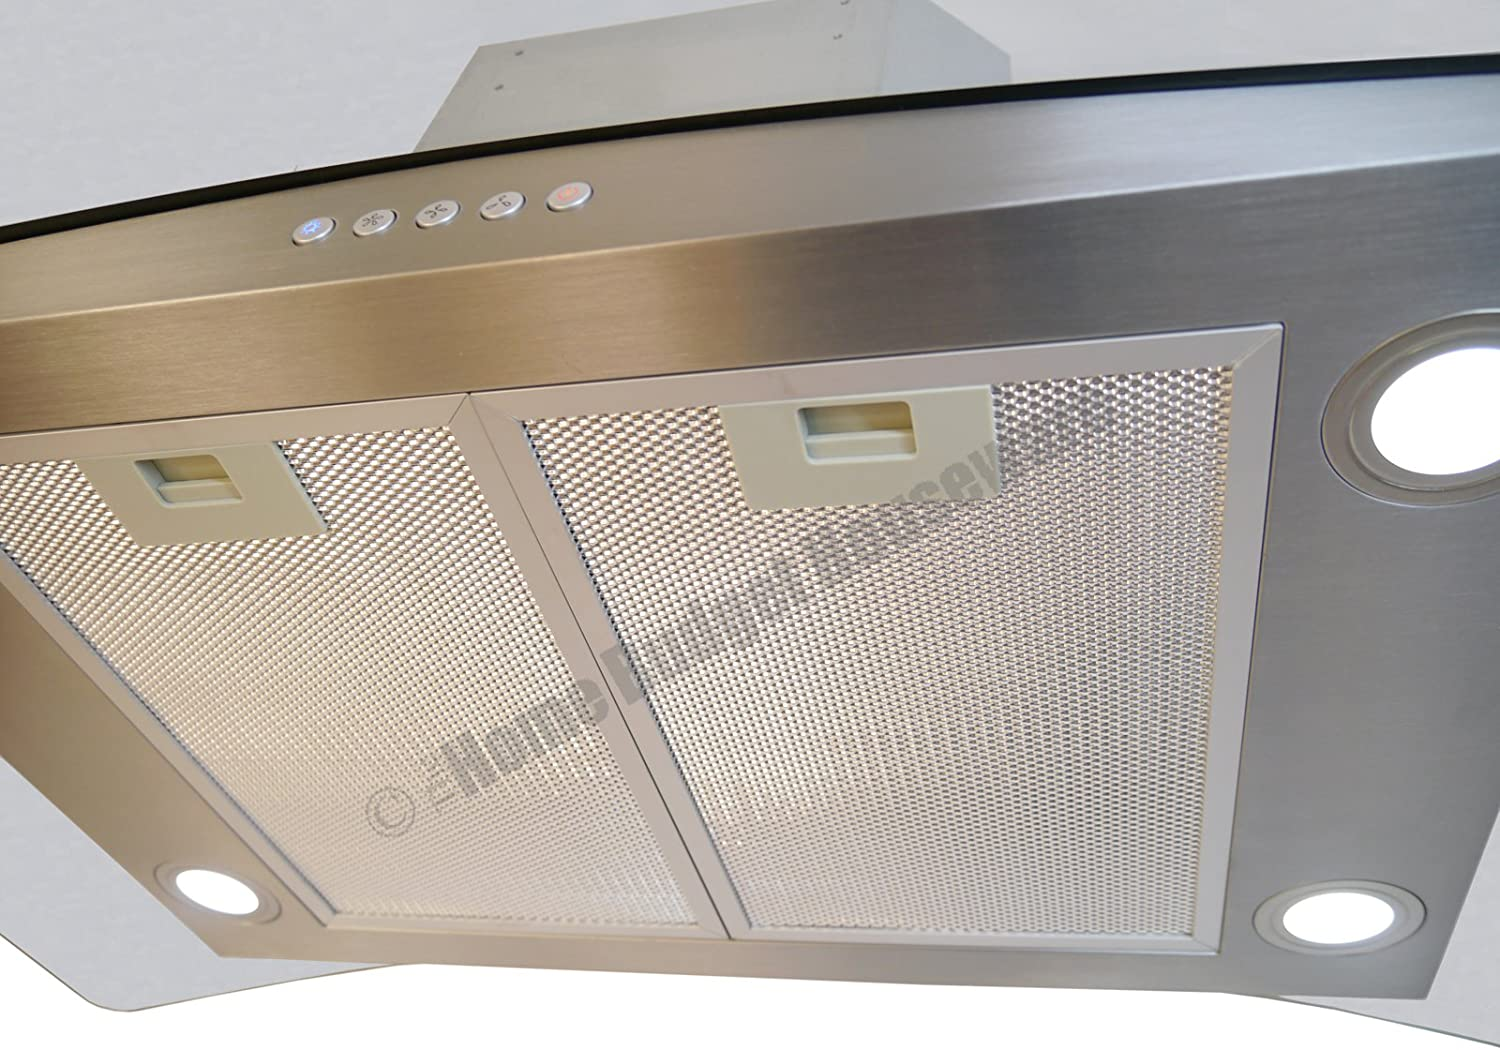 3 Speed Exhaust Fan Ducted//Ductless Convertible Duct Blue Ocean 36 RH668I Tempered Glass Stainless Steel LED Light Island Mount Kitchen Range Hood 900 CFM PRO PERFORMANCE